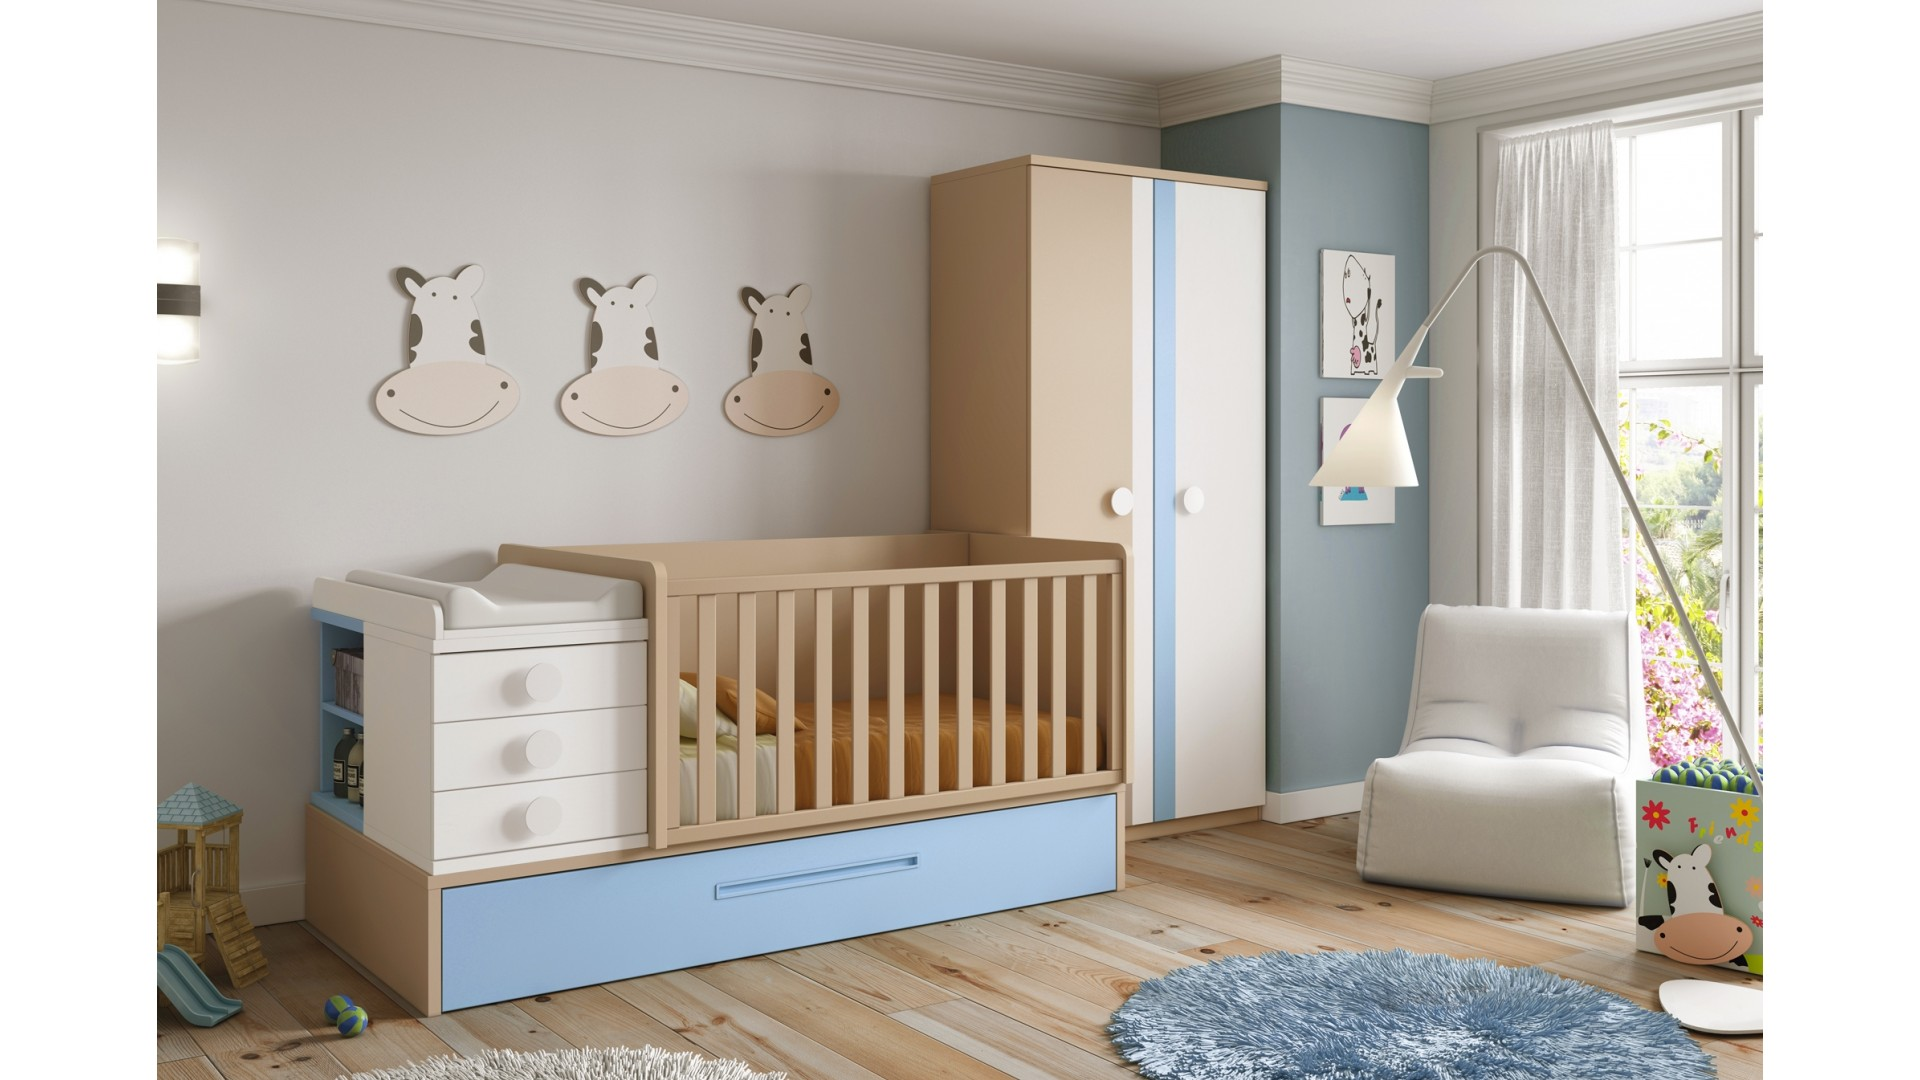 lit evolutif but lit evolutif enfants lit evolutif alinea montage pas cher conforama blanc. Black Bedroom Furniture Sets. Home Design Ideas